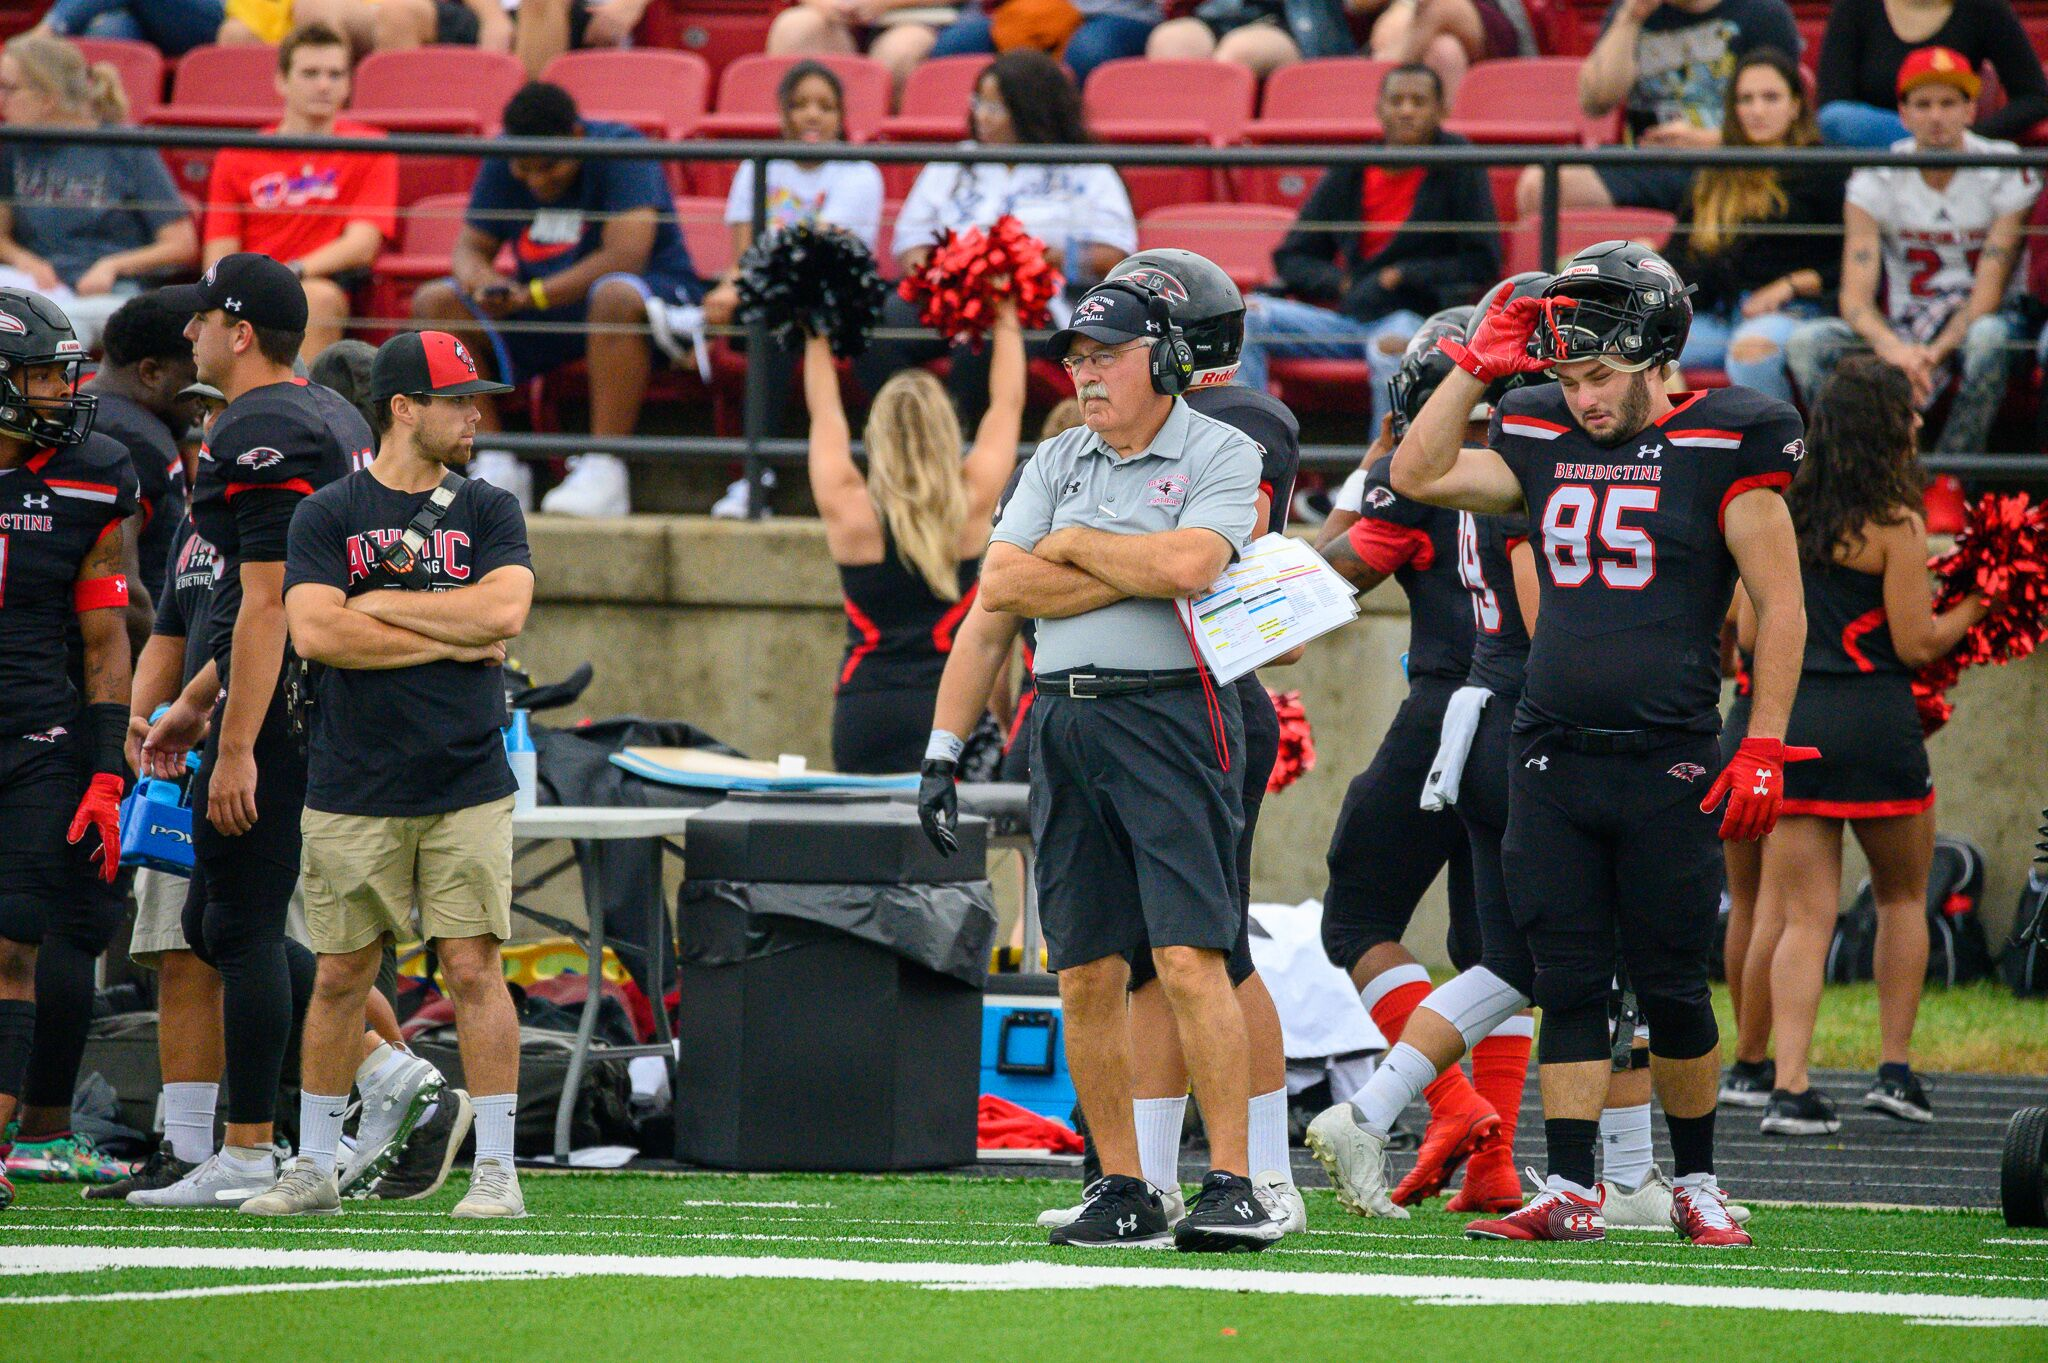 Coach Larry Wilcox stands on the sideline during the Ravens' 73-14 win over Clarke (Iowa) on September 21, 2019. (Photo by Jeremy Kaczor)